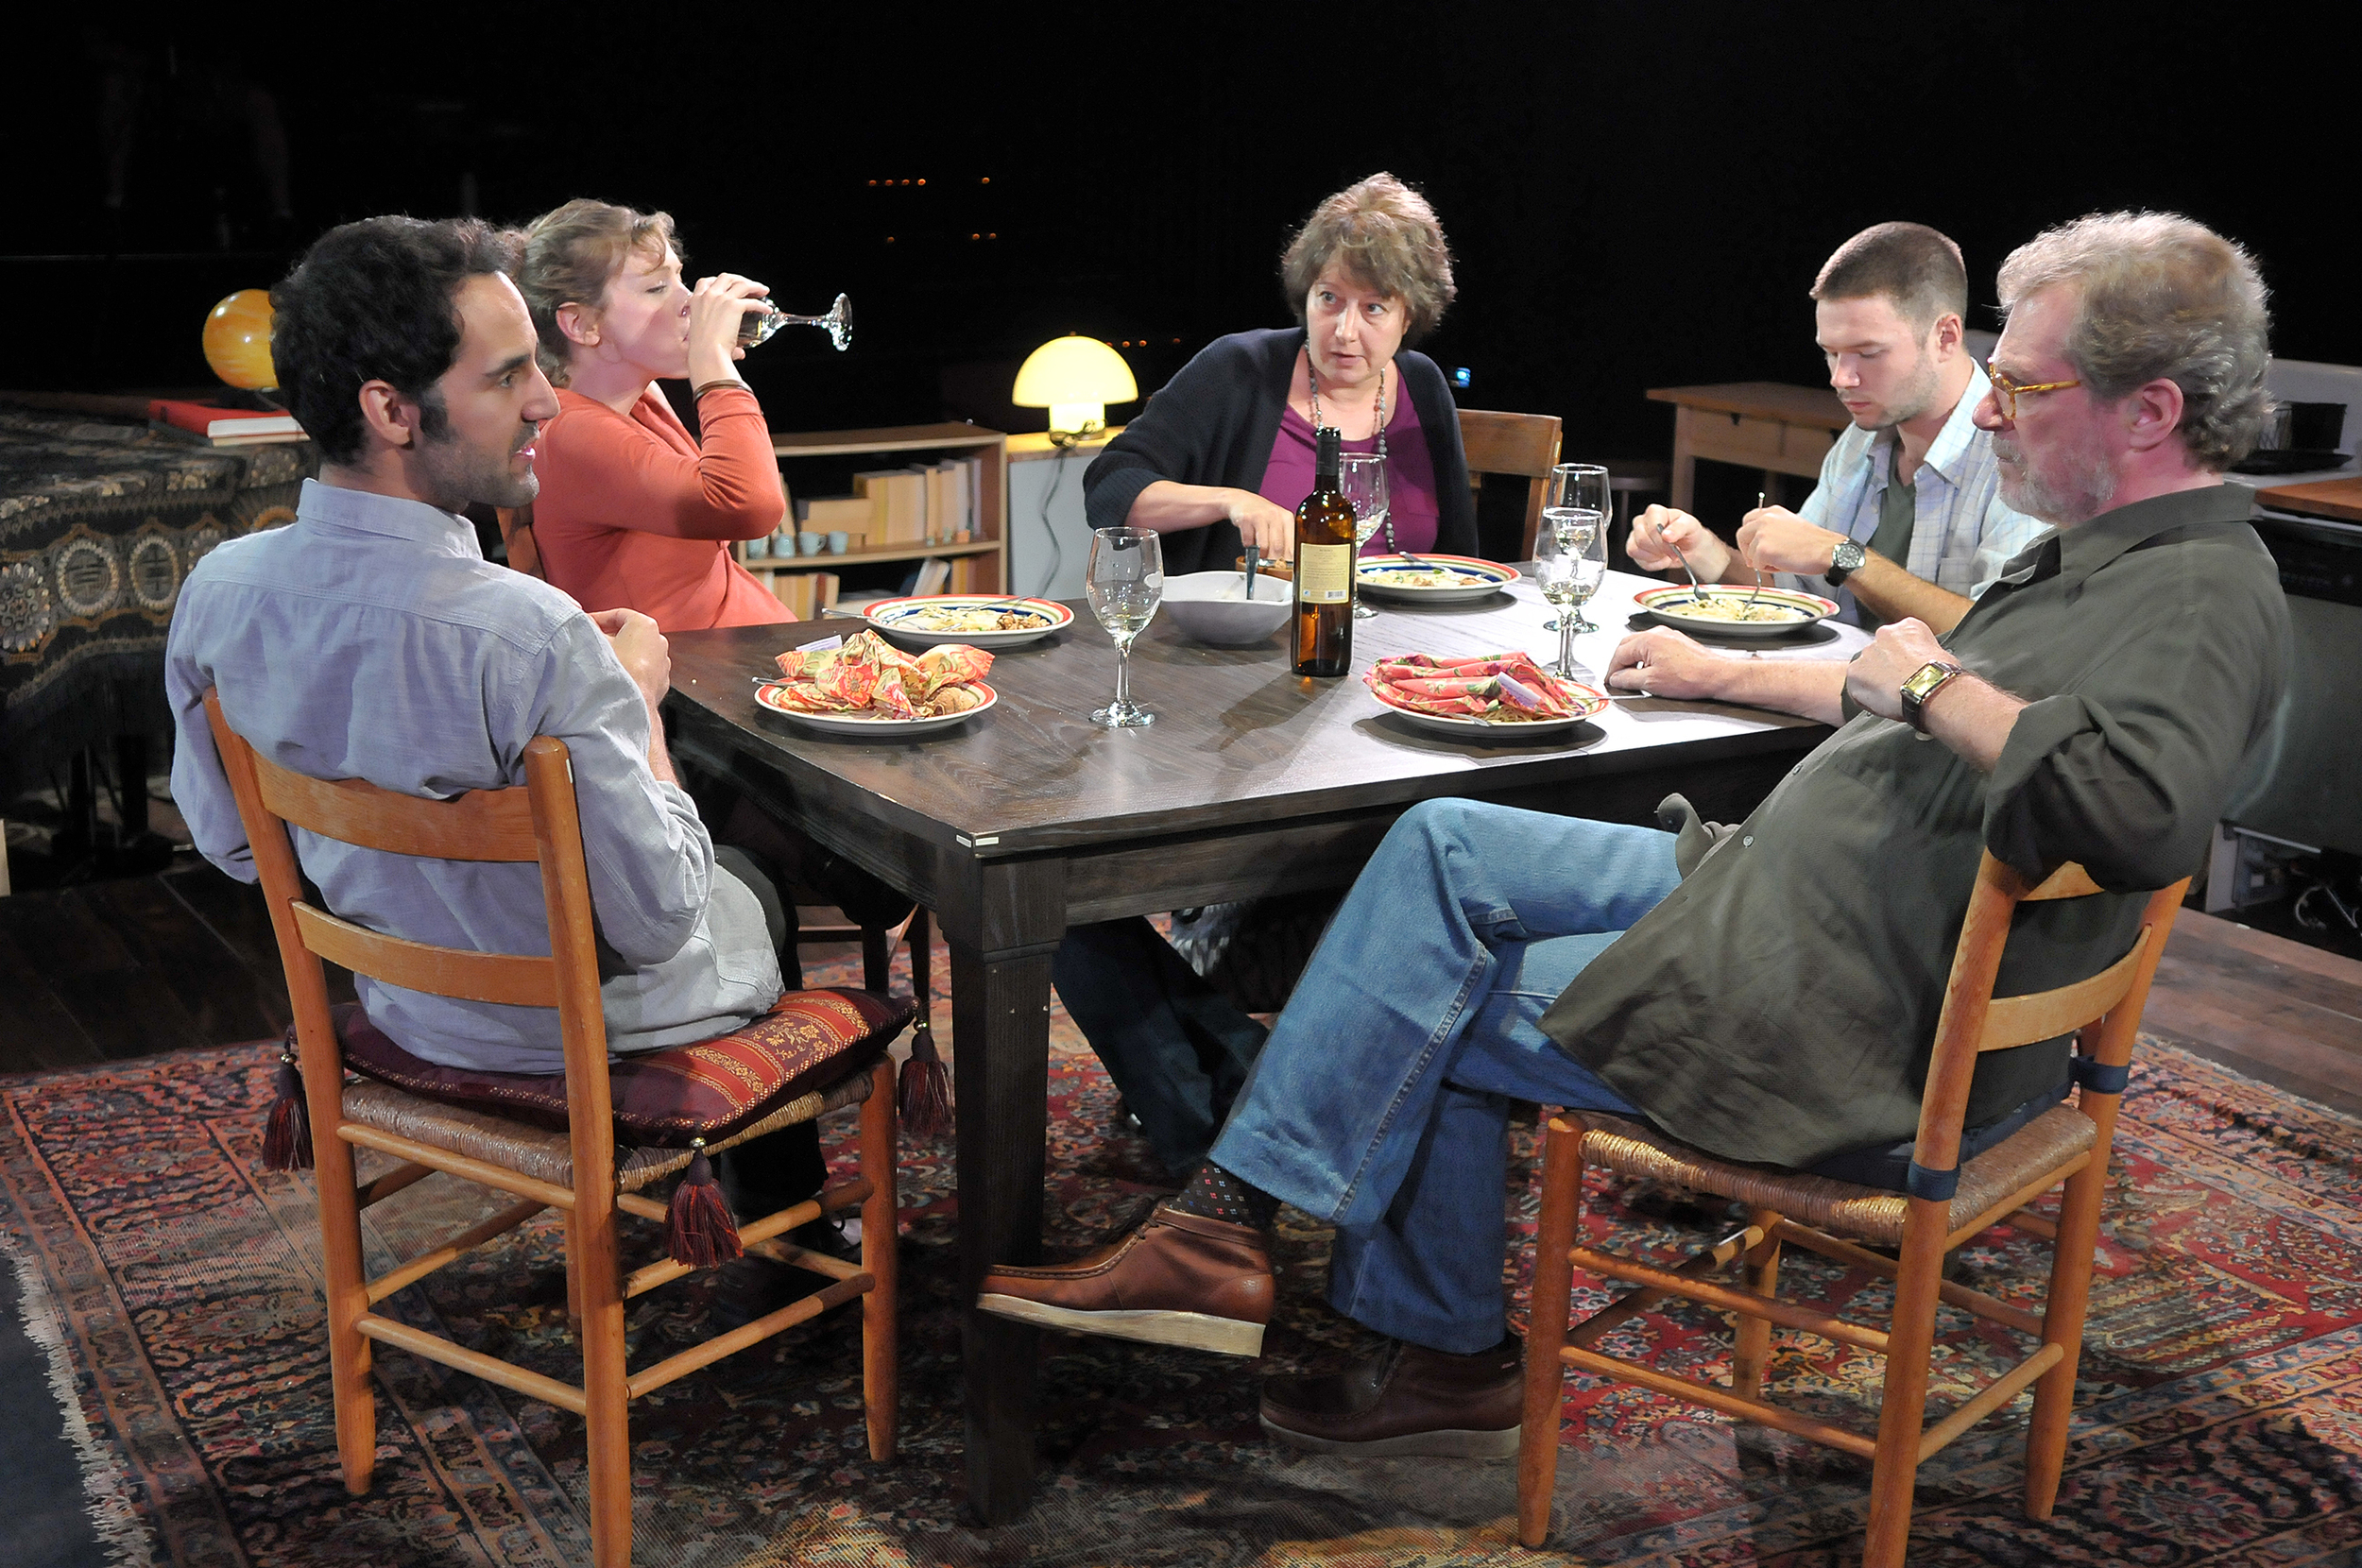 Nael Nacer, Kathryn Miles, James Caverly, Adrianne Krstansky, and Patrick Shea in the SpeakEasy Stage Company production of TRIBES directed by M. Bevin O'Gara. Photo: Craig Bailey / Perspective Photo